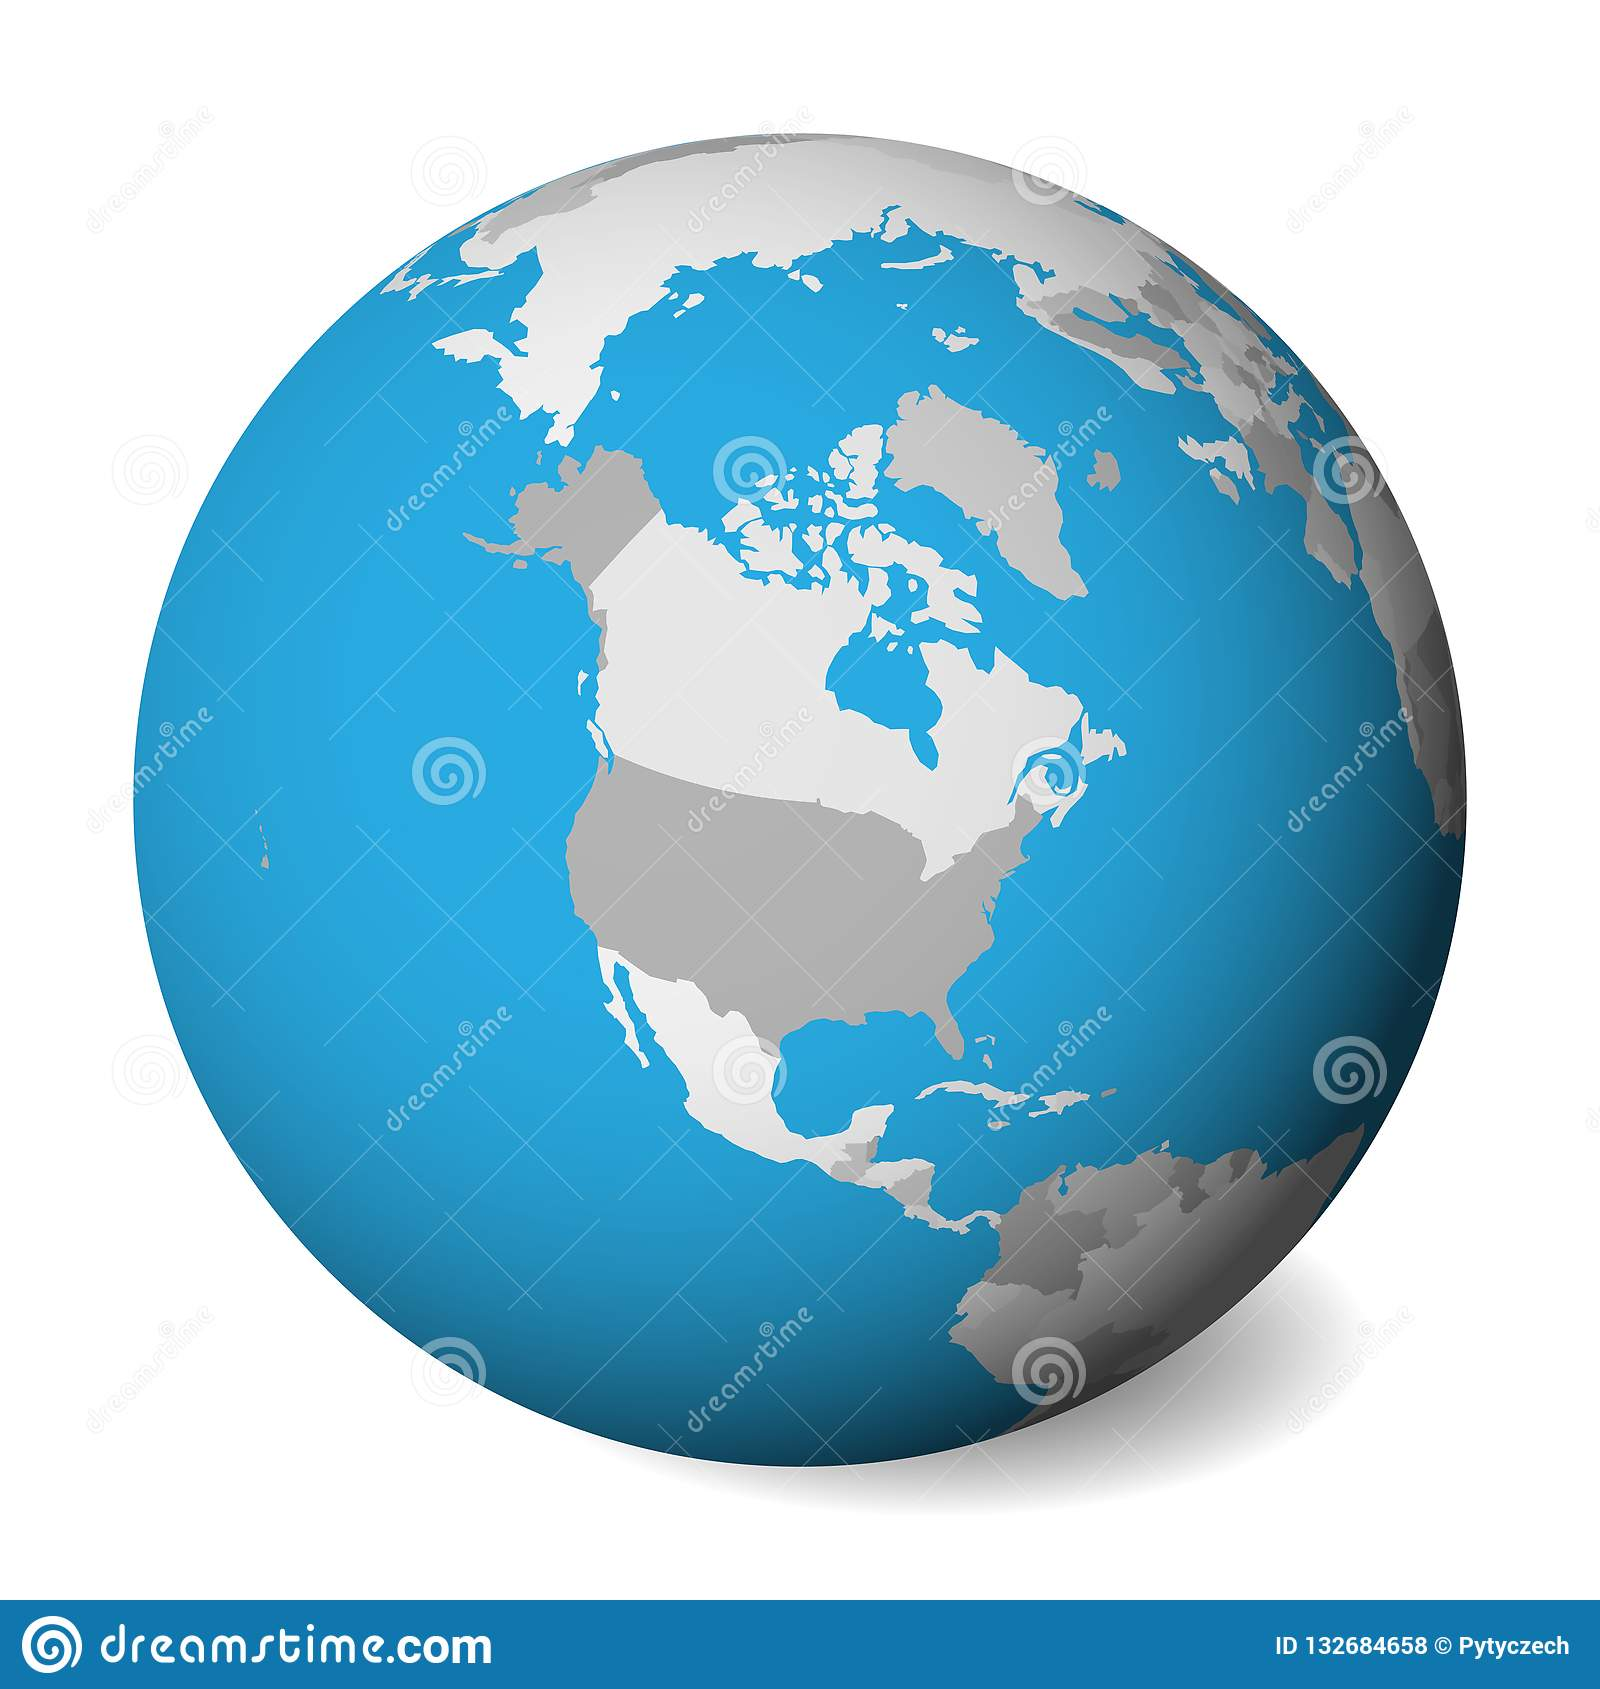 North America Blank Political Map.Blank Political Map Of North America 3d Earth Globe With Blue Water